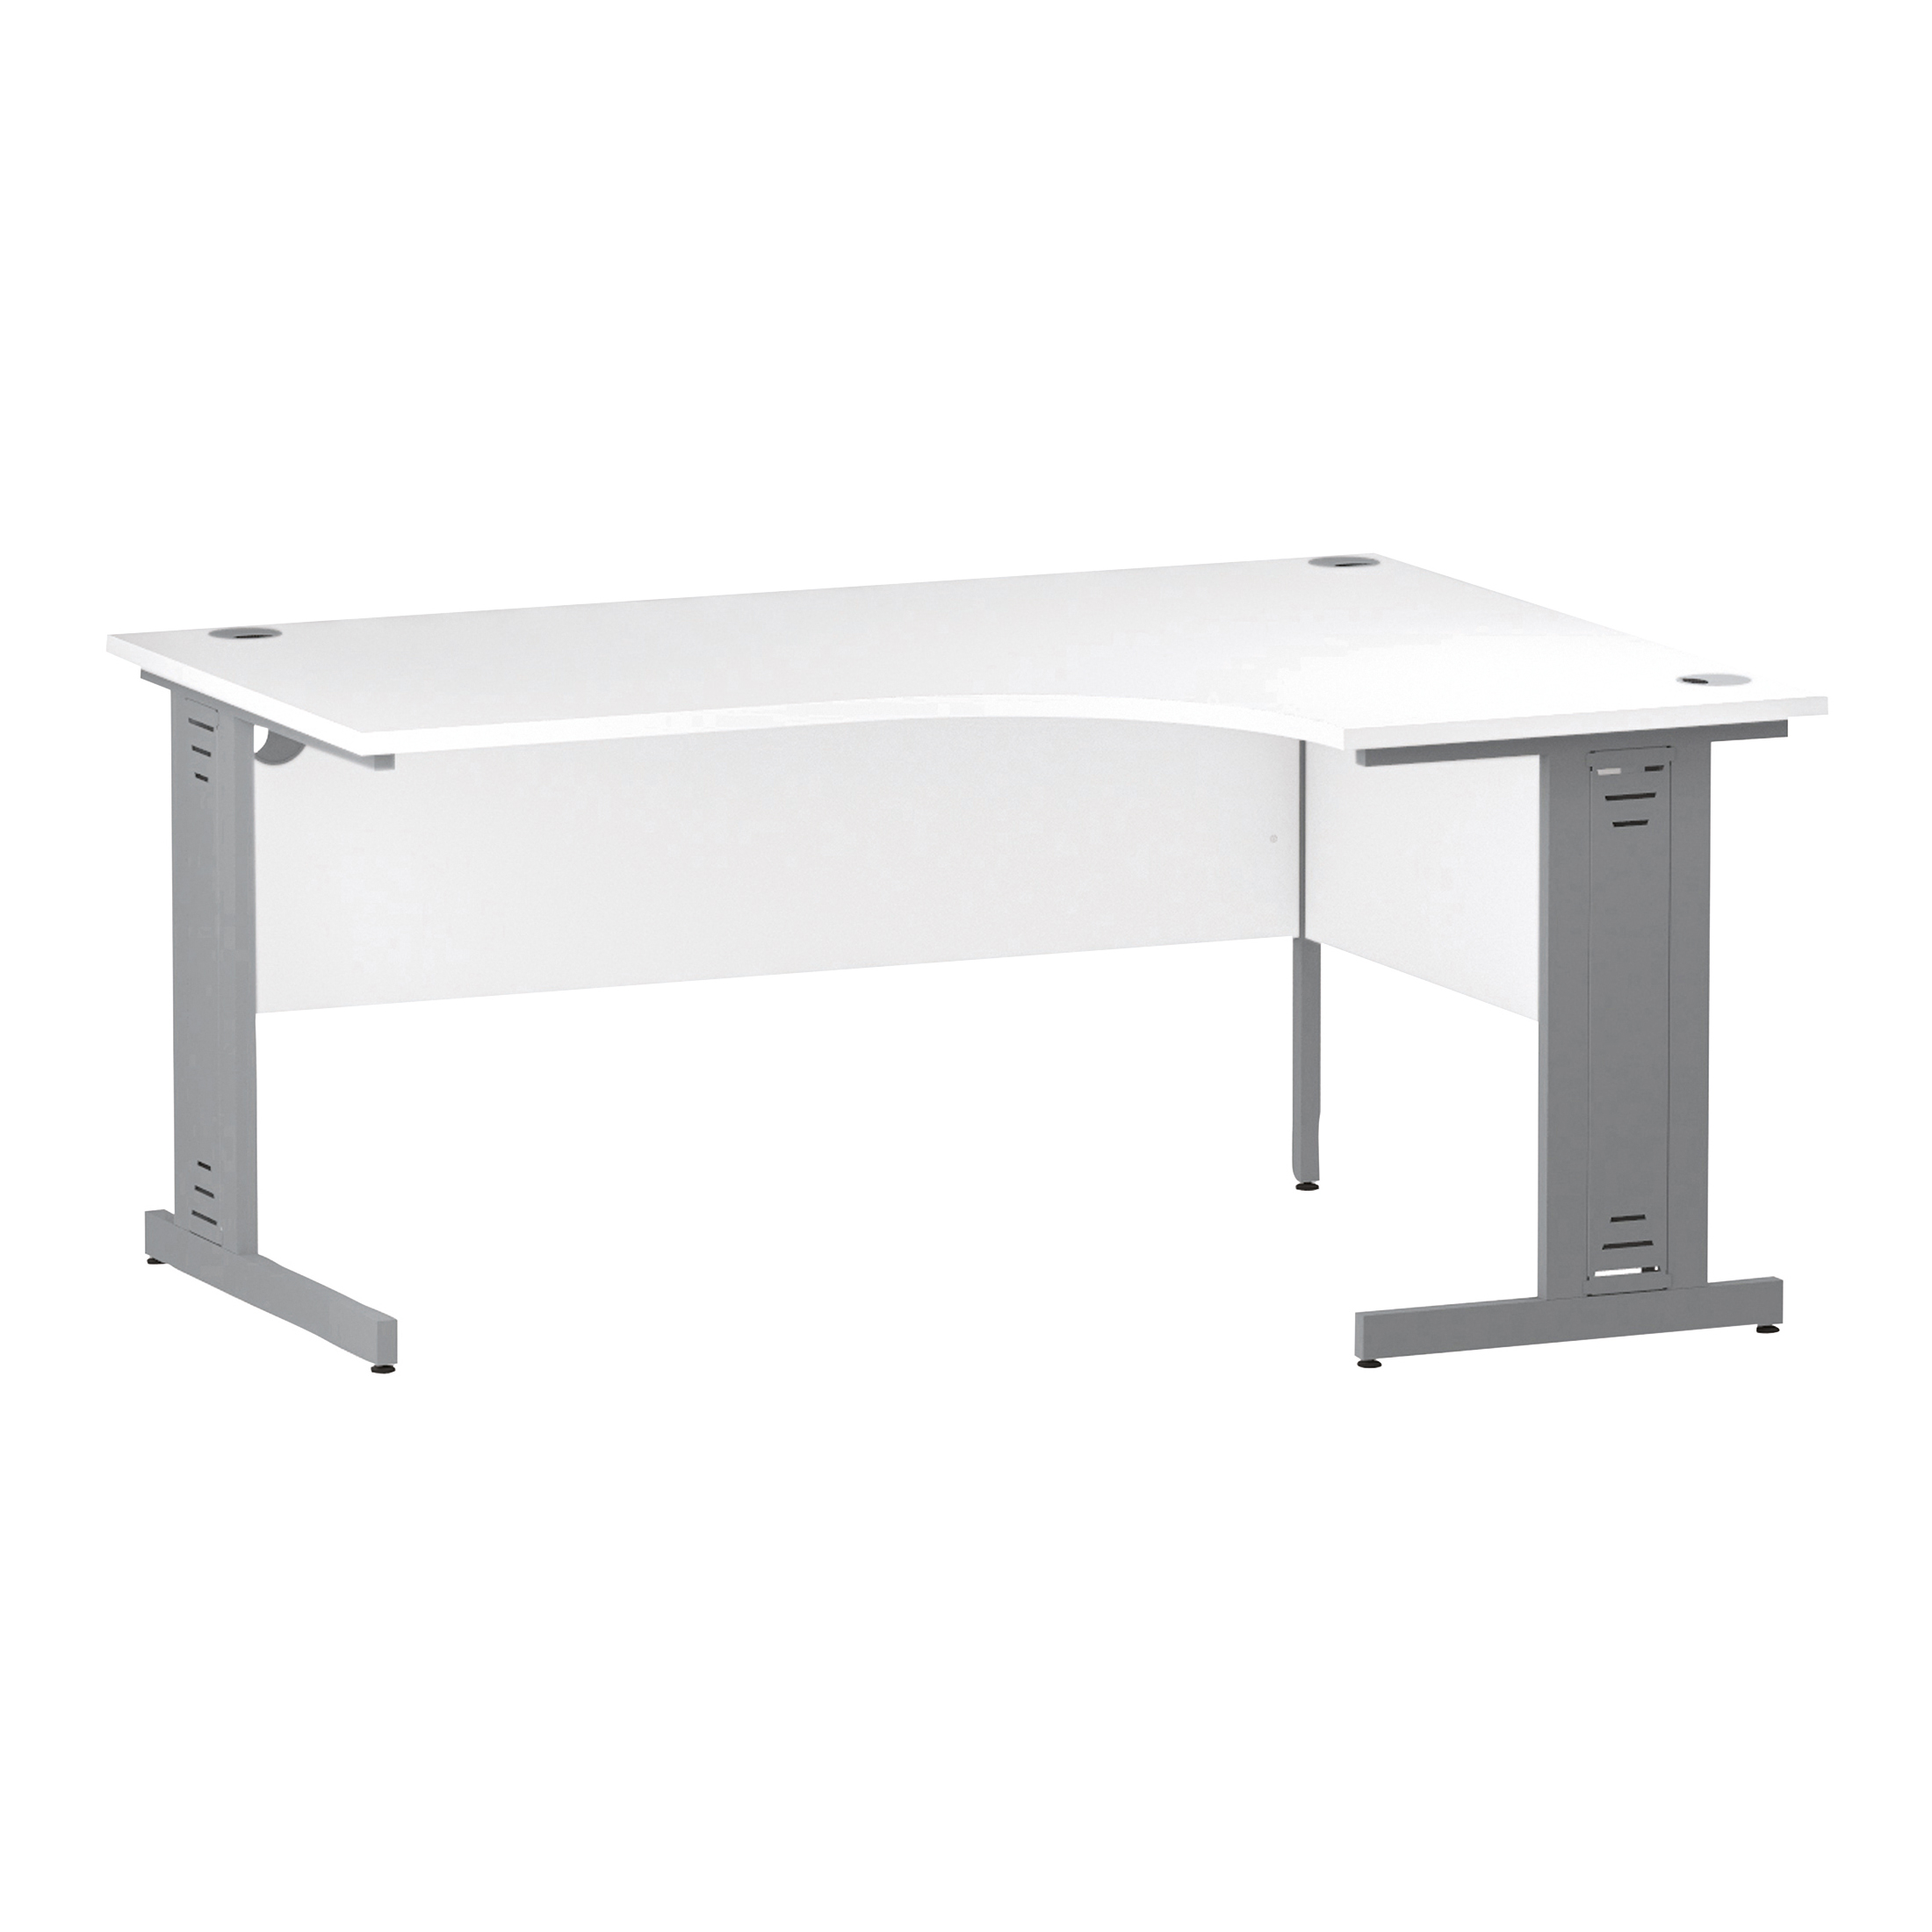 Trexus Radial Desk Right Hand Silver Cable Managed Leg 1600/1200mm White Ref I000492